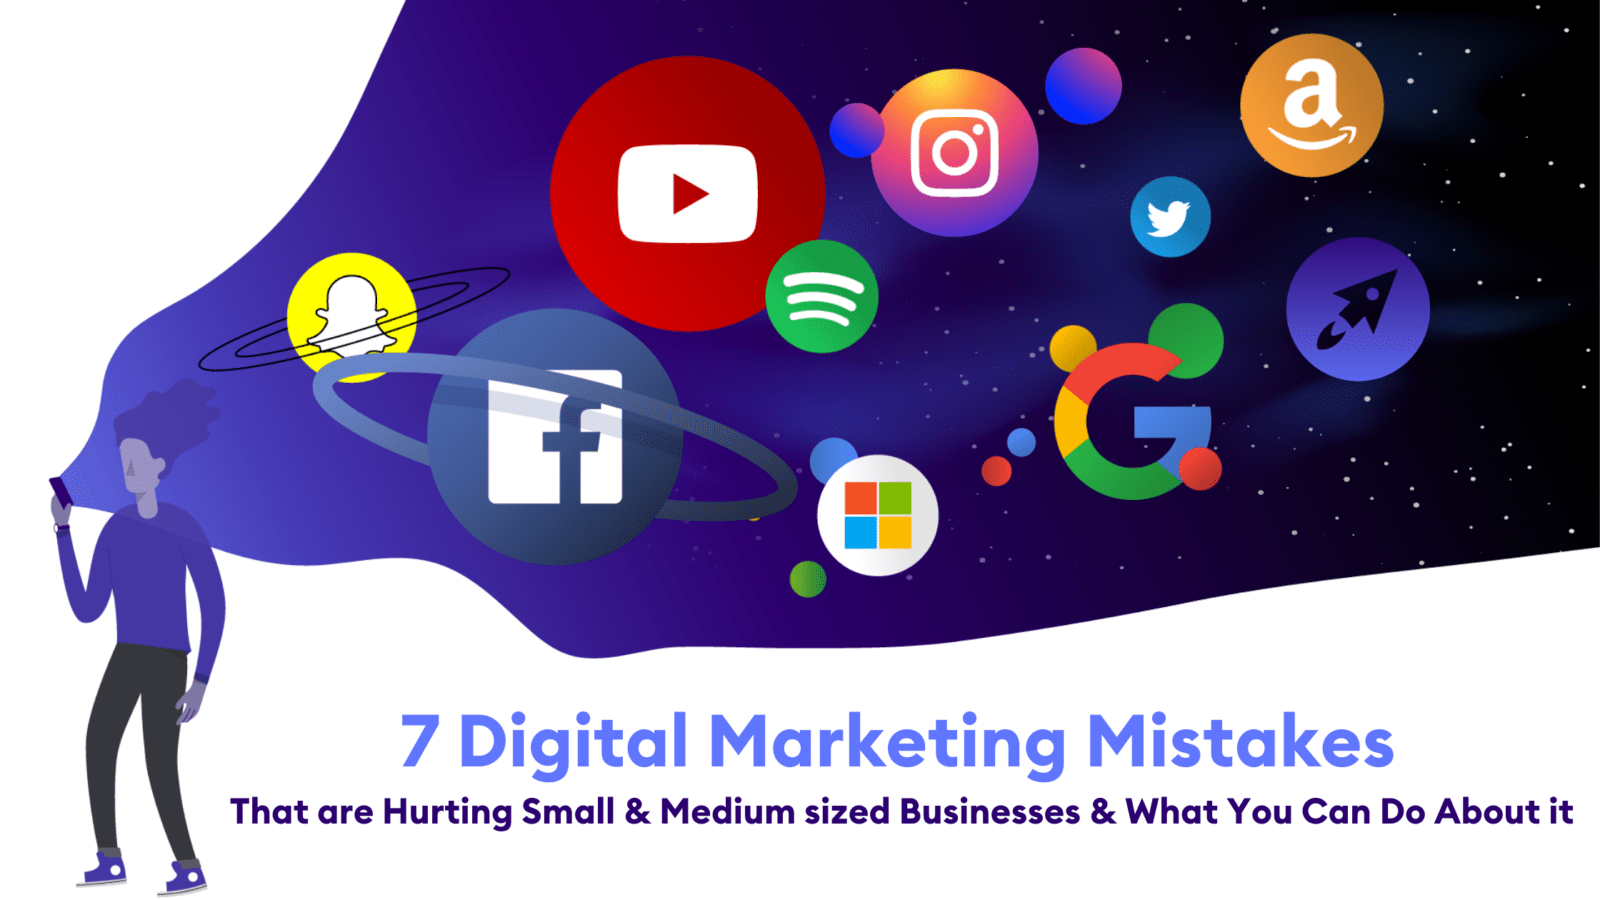 7-Digital-Marketing-Mistakes-That-are-Hurting-Small-&-Medium-sized-Businesses-&-What-You-Can-Do-About-it